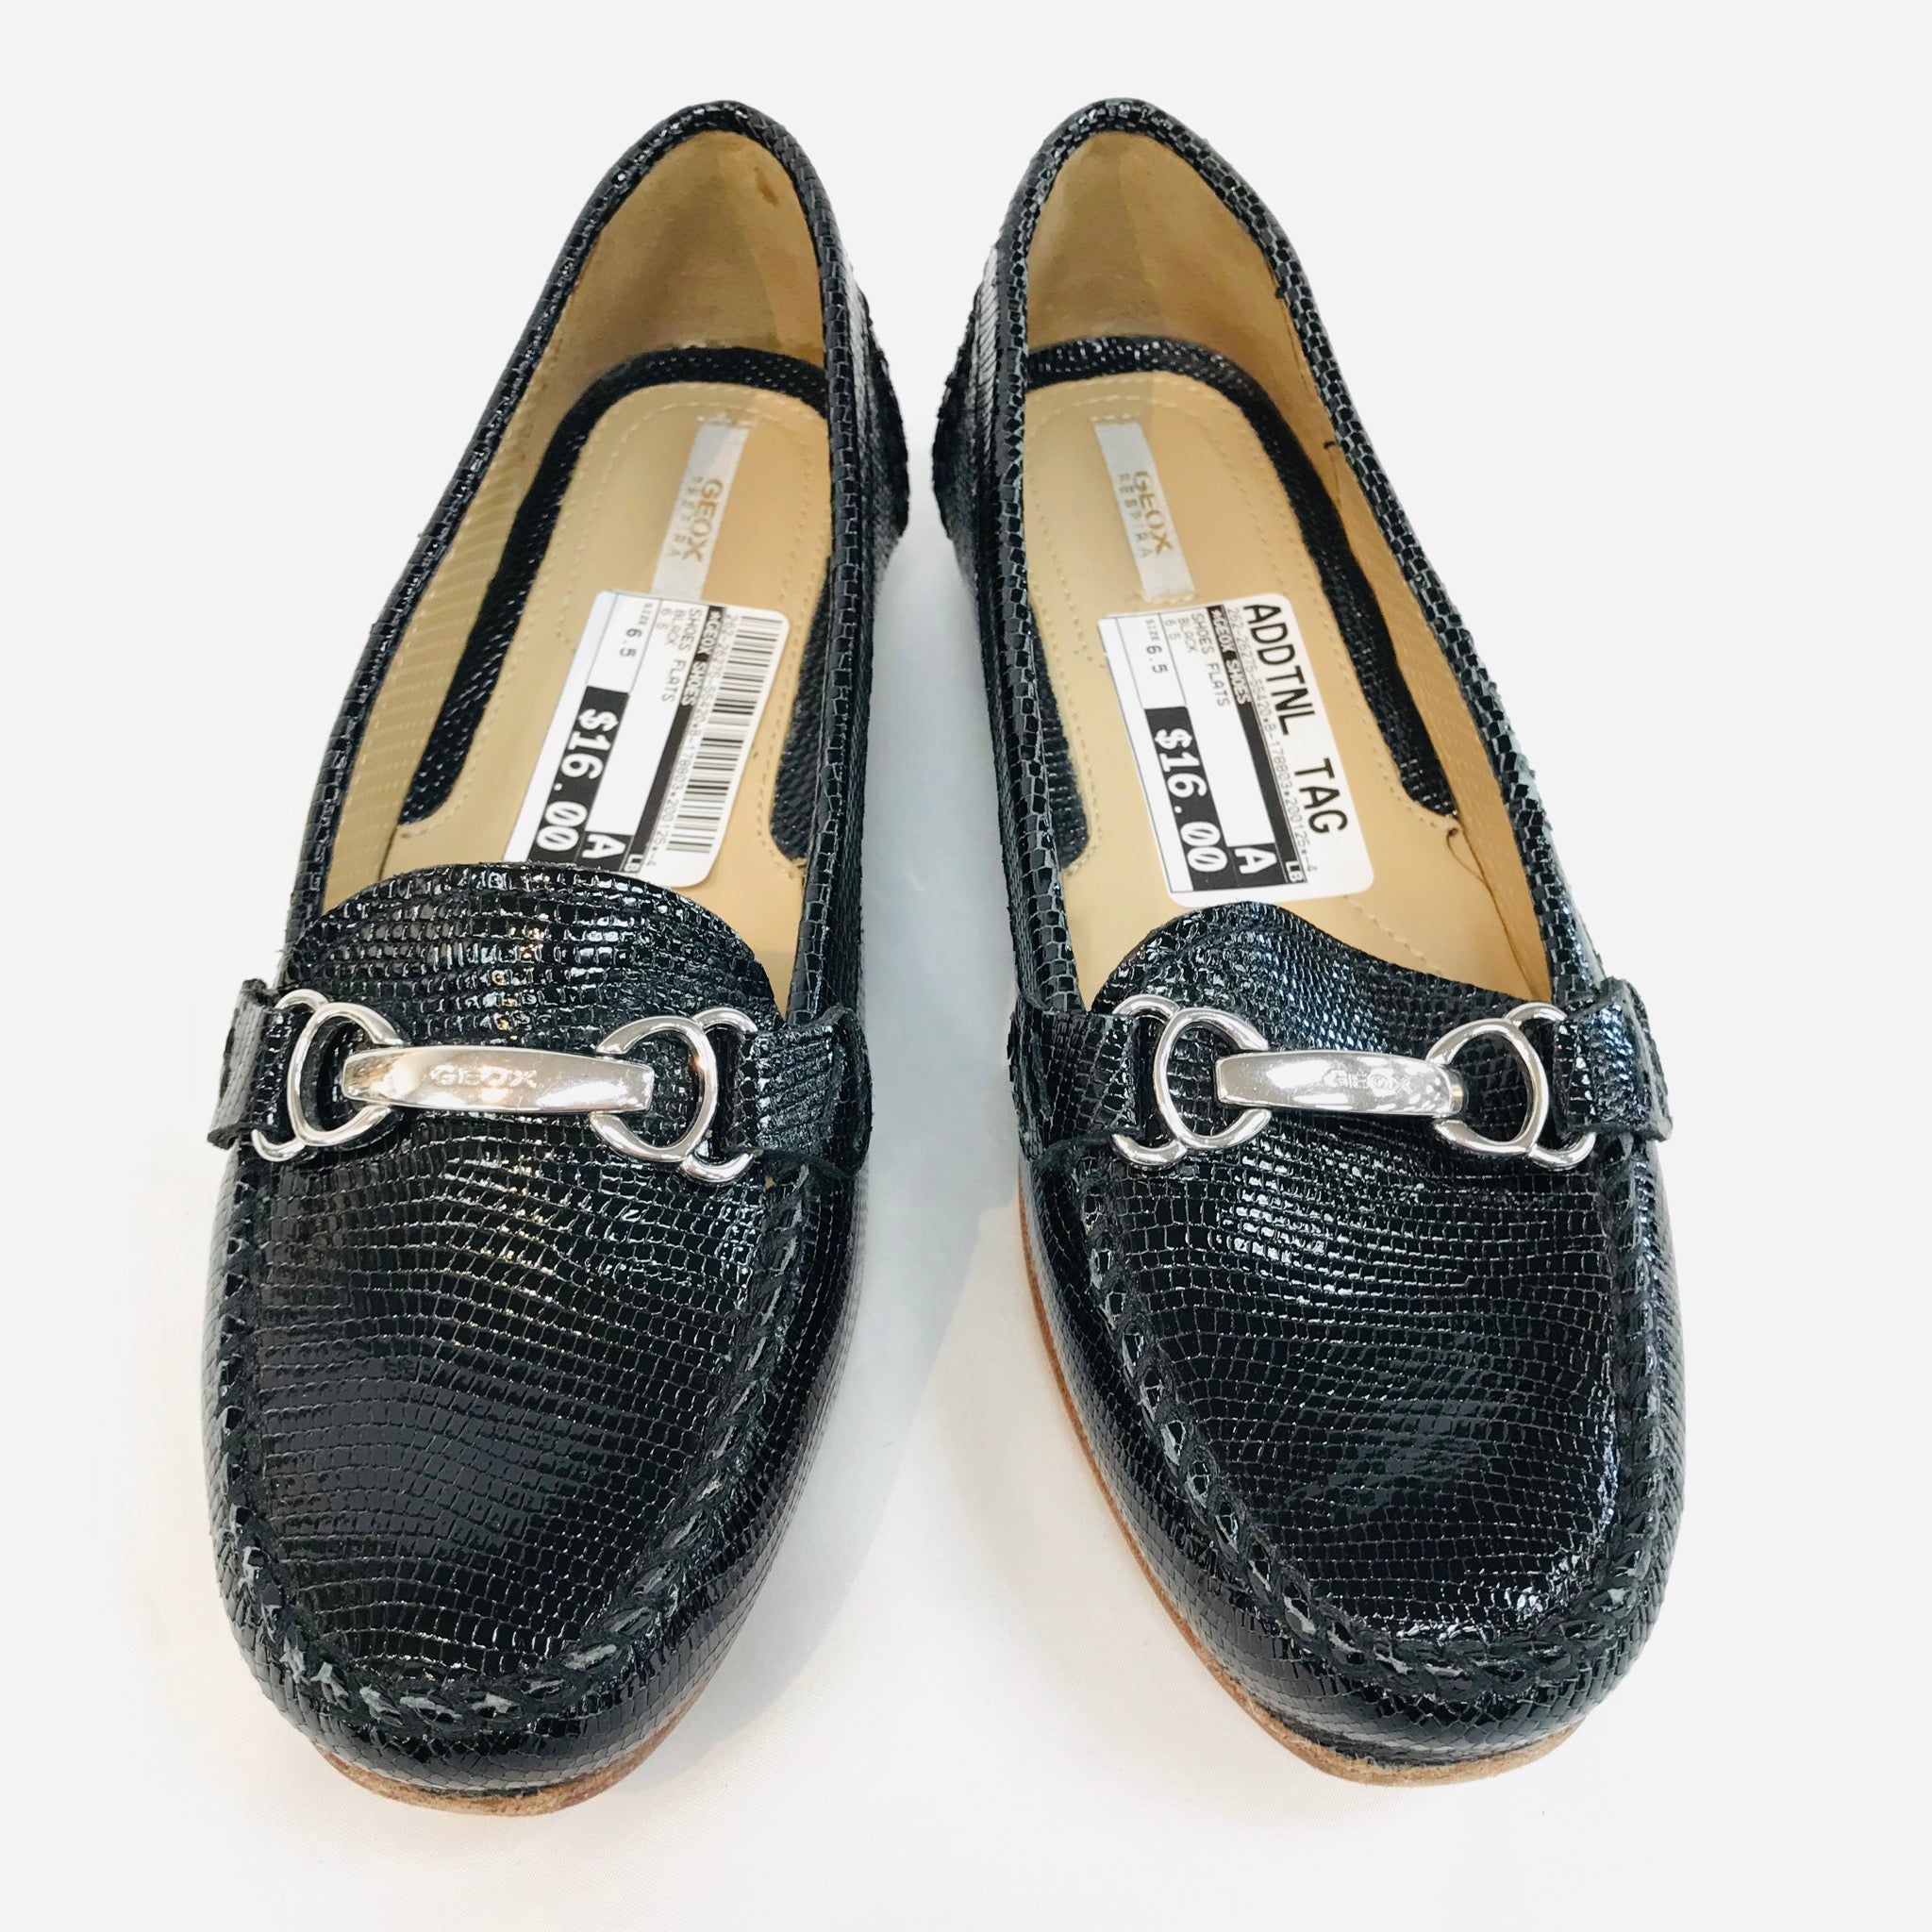 Primary Photo - BRAND: GEOX SHOES <BR>STYLE: SHOES FLATS <BR>COLOR: BLACK <BR>SIZE: 6.5 <BR>SKU: 262-26275-55420<BR>AS IS